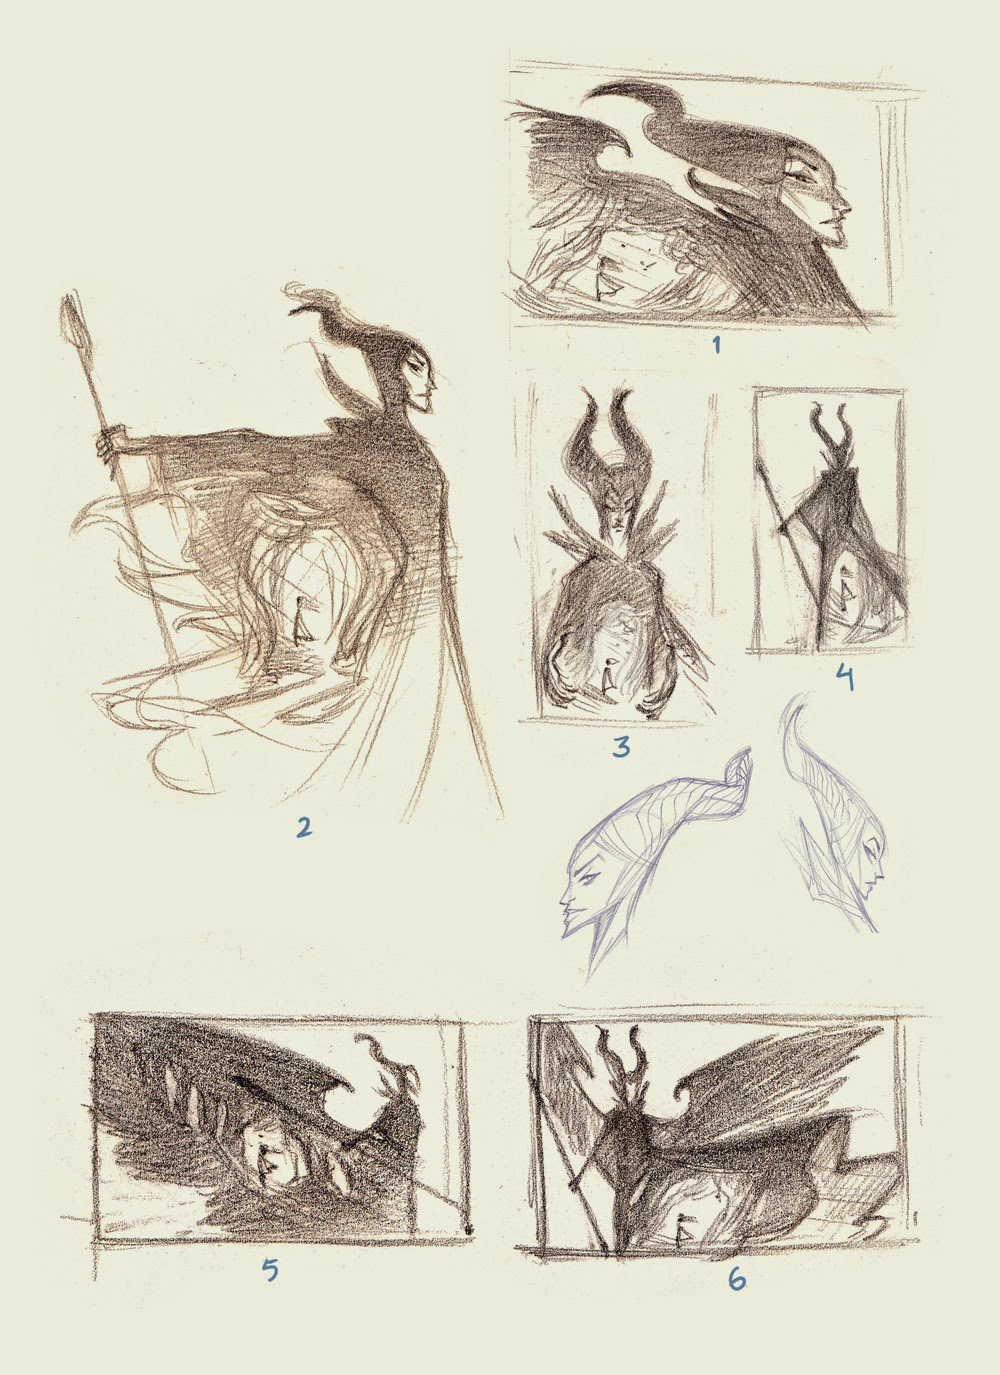 'The Curse of Maleficent: The Tale of a Sleeping Beauty' Illustrations by Nicholas Kole